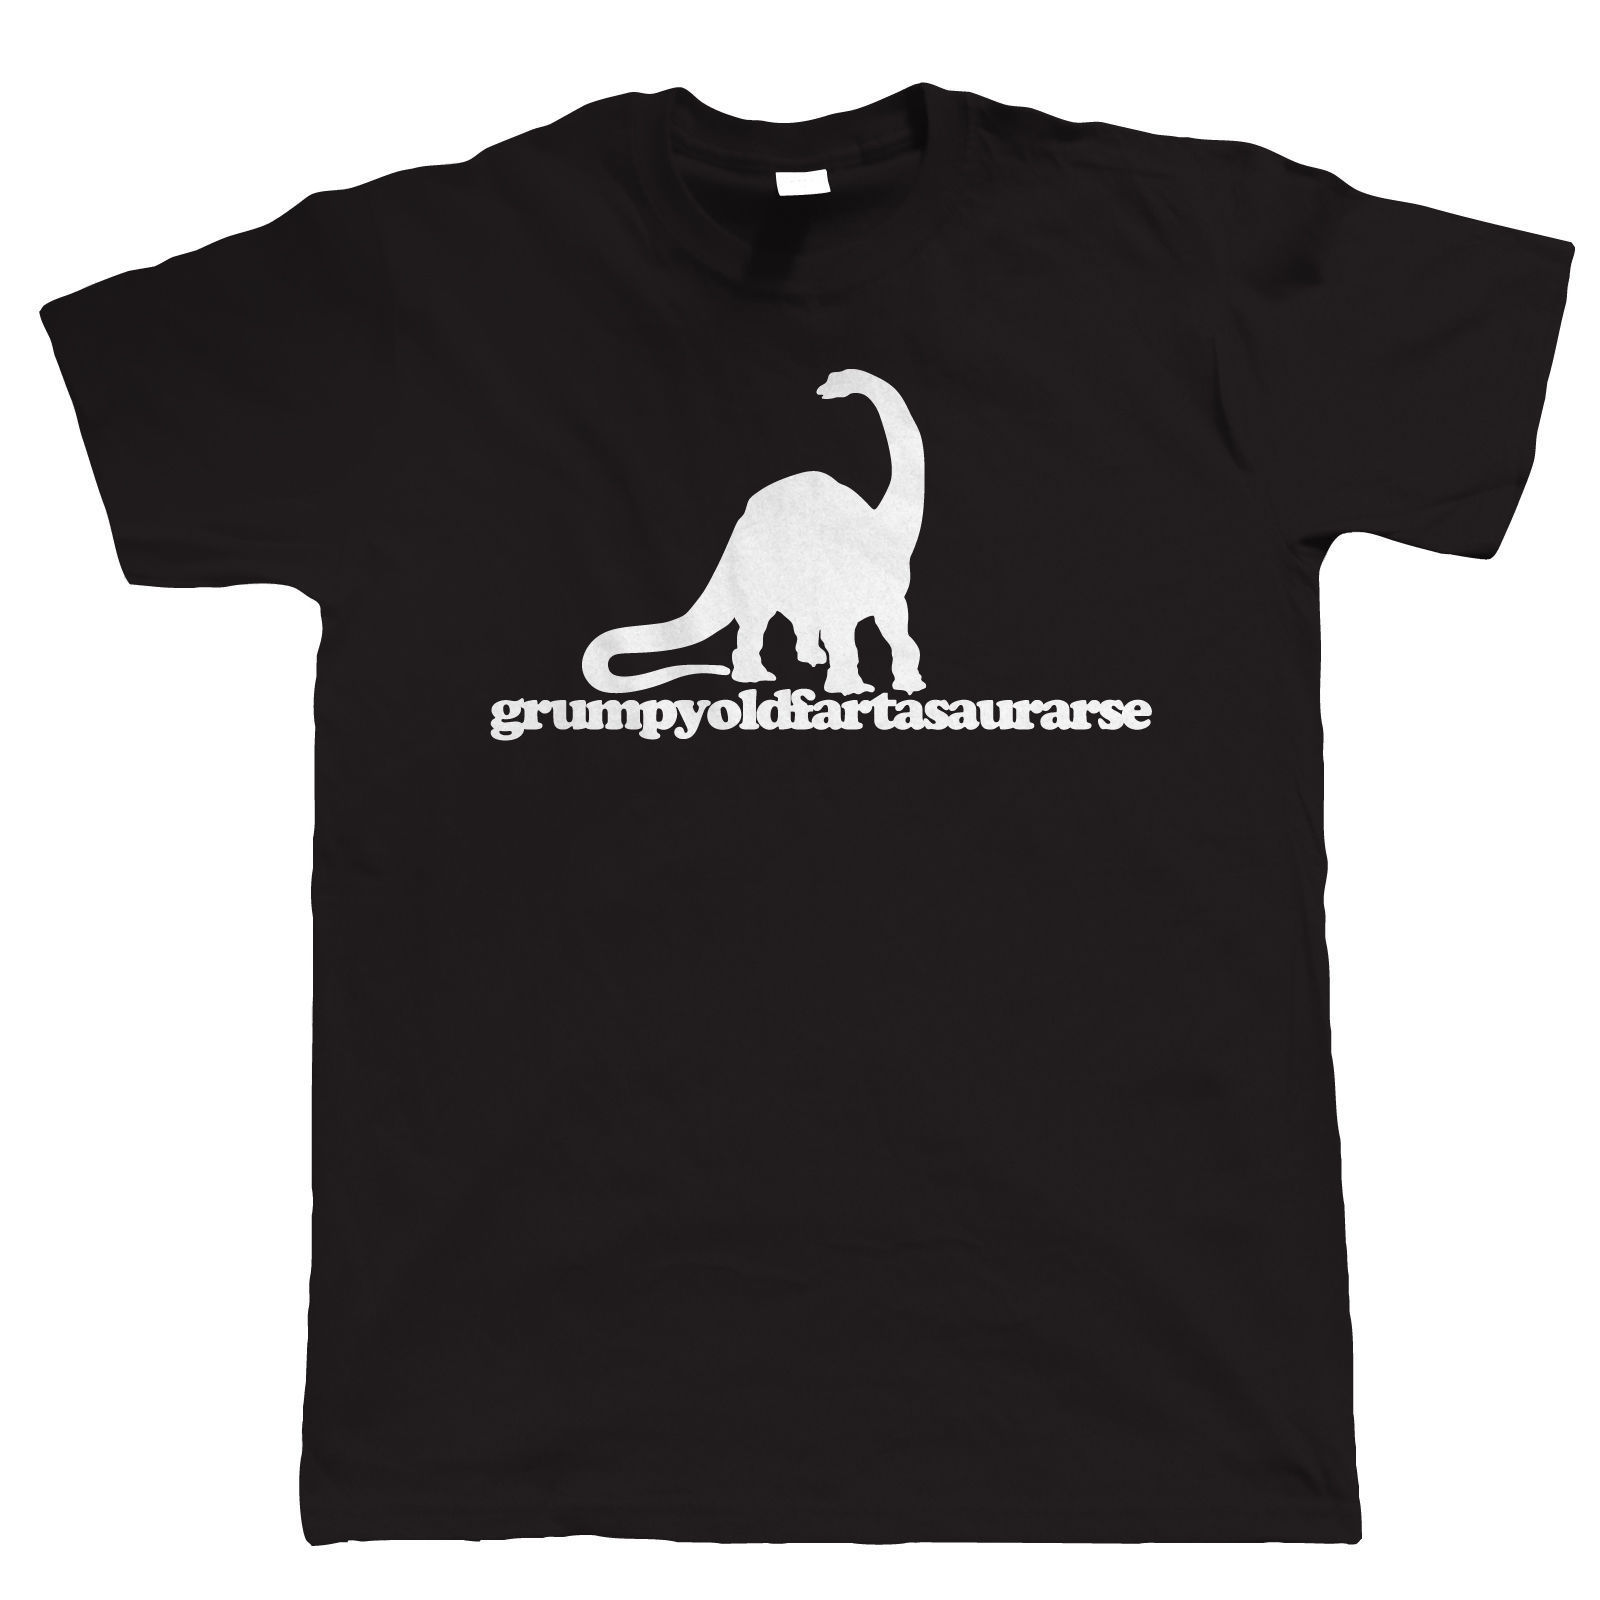 Grumpyoldfartasaurarse Funny T Shirt, Fathers Day Birthday Gift for Dad Grandad